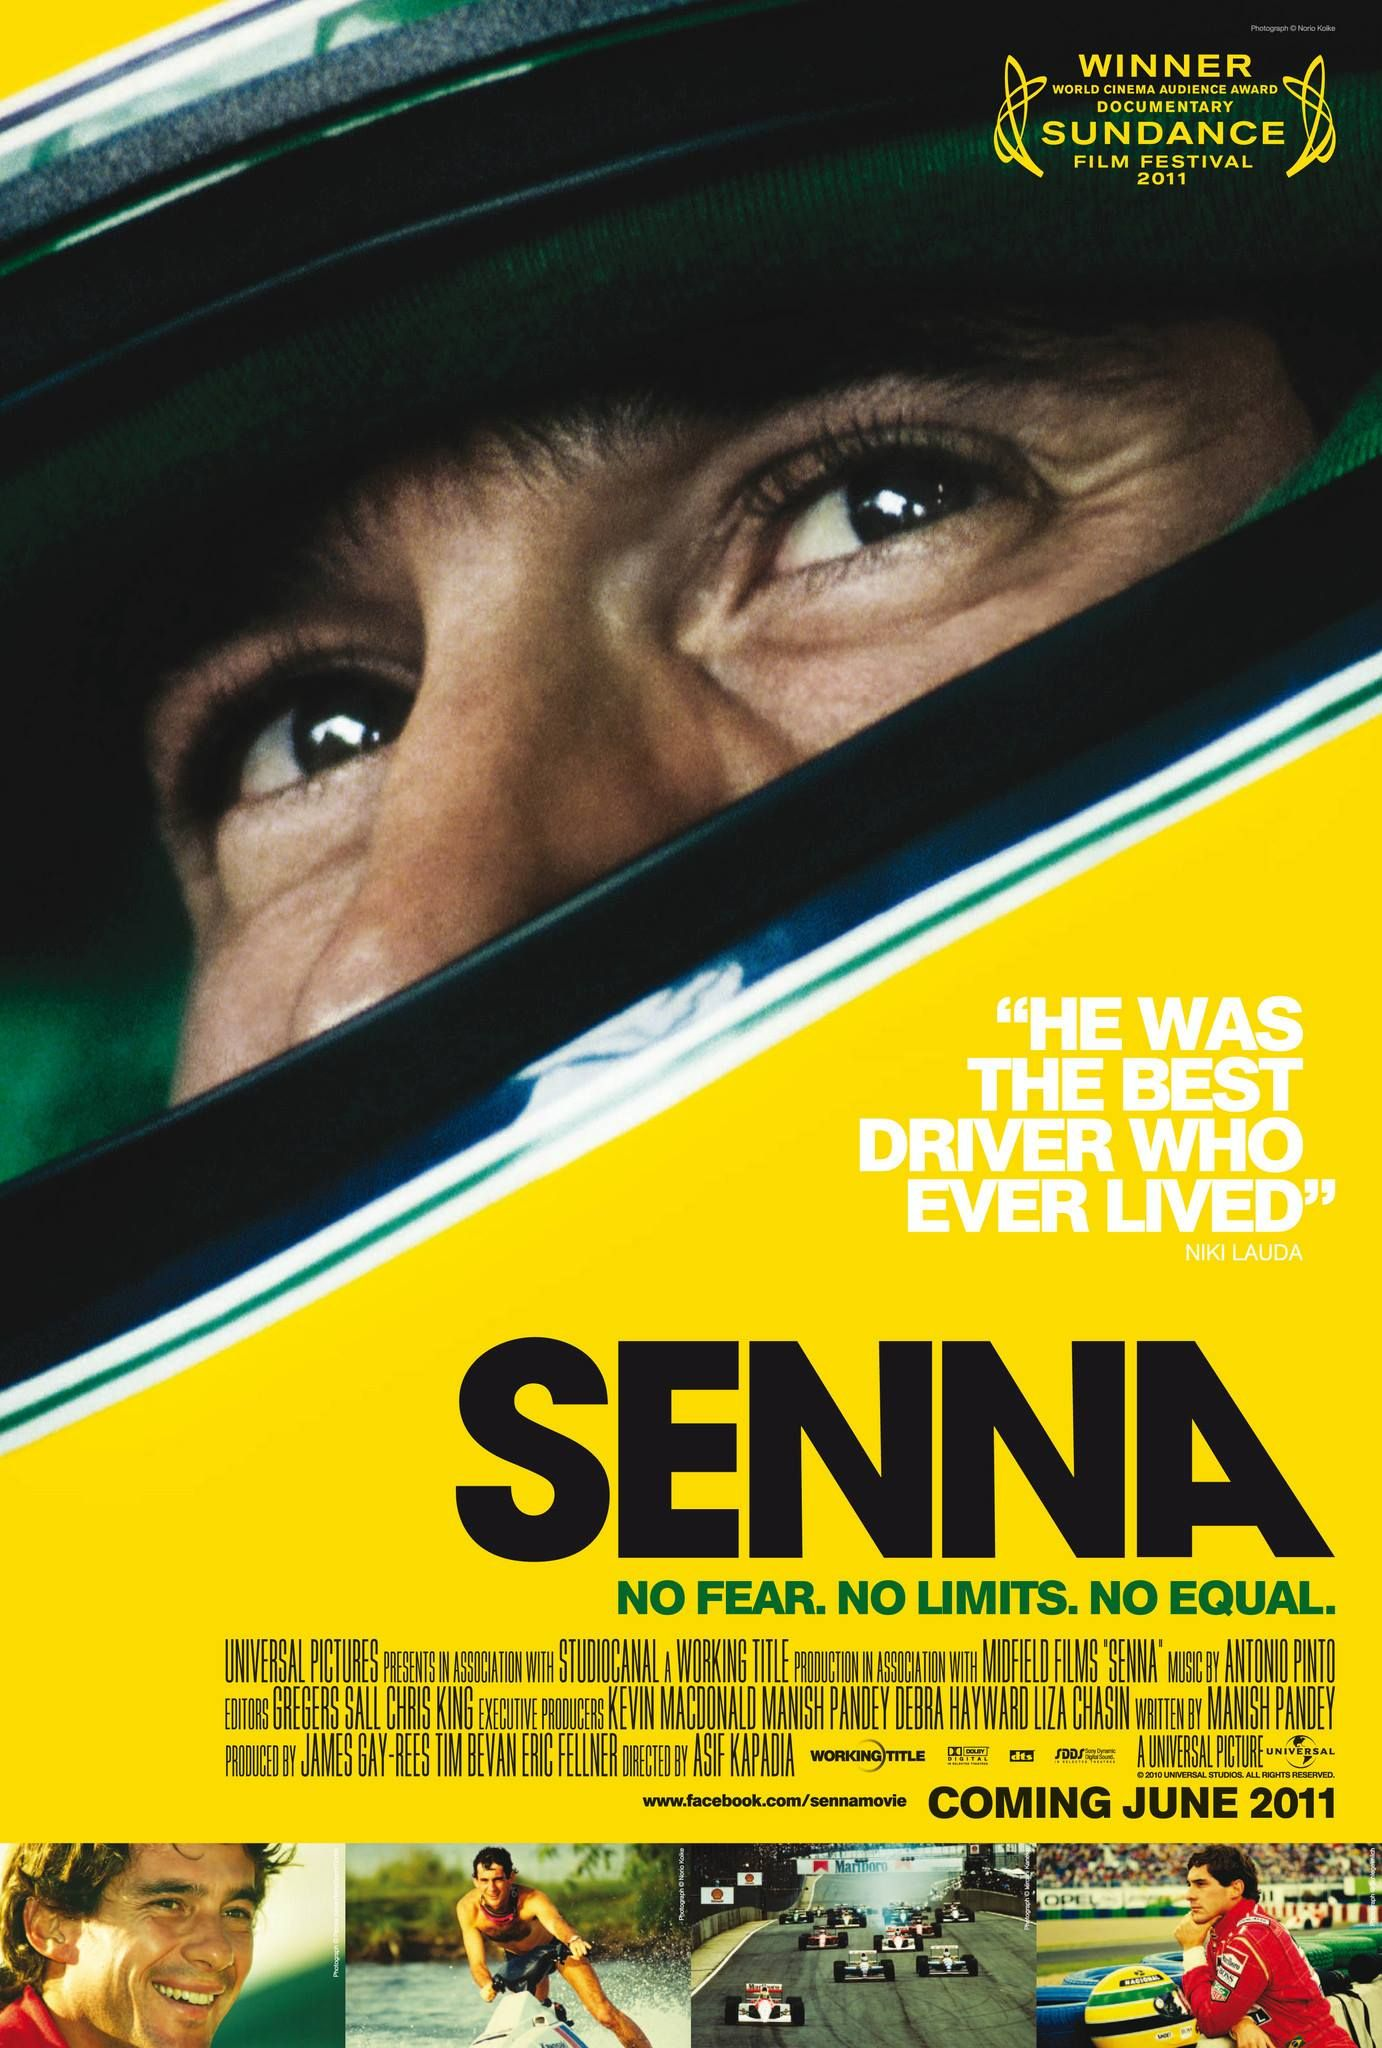 Senna Film Poster, Designed By Creative Partnership The Documentary About